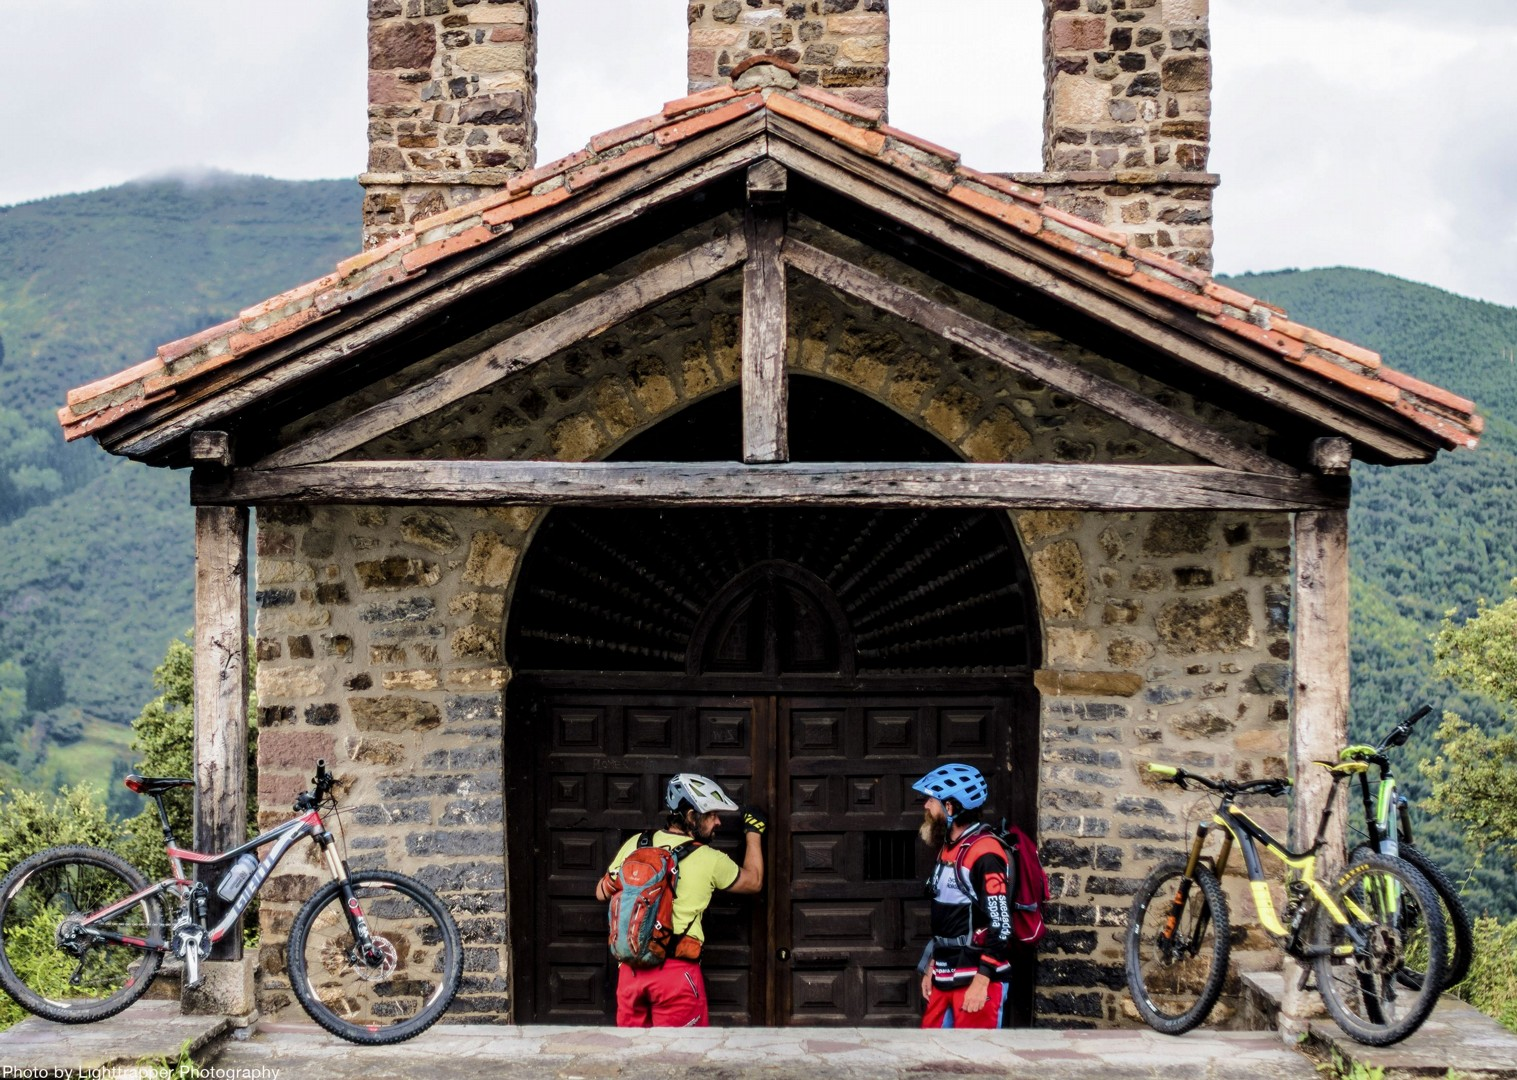 mountain-biking-journey-to-santiago-spain.jpg - Spain - Camino Primitivo - Guided Mountain Biking Holiday - Mountain Biking